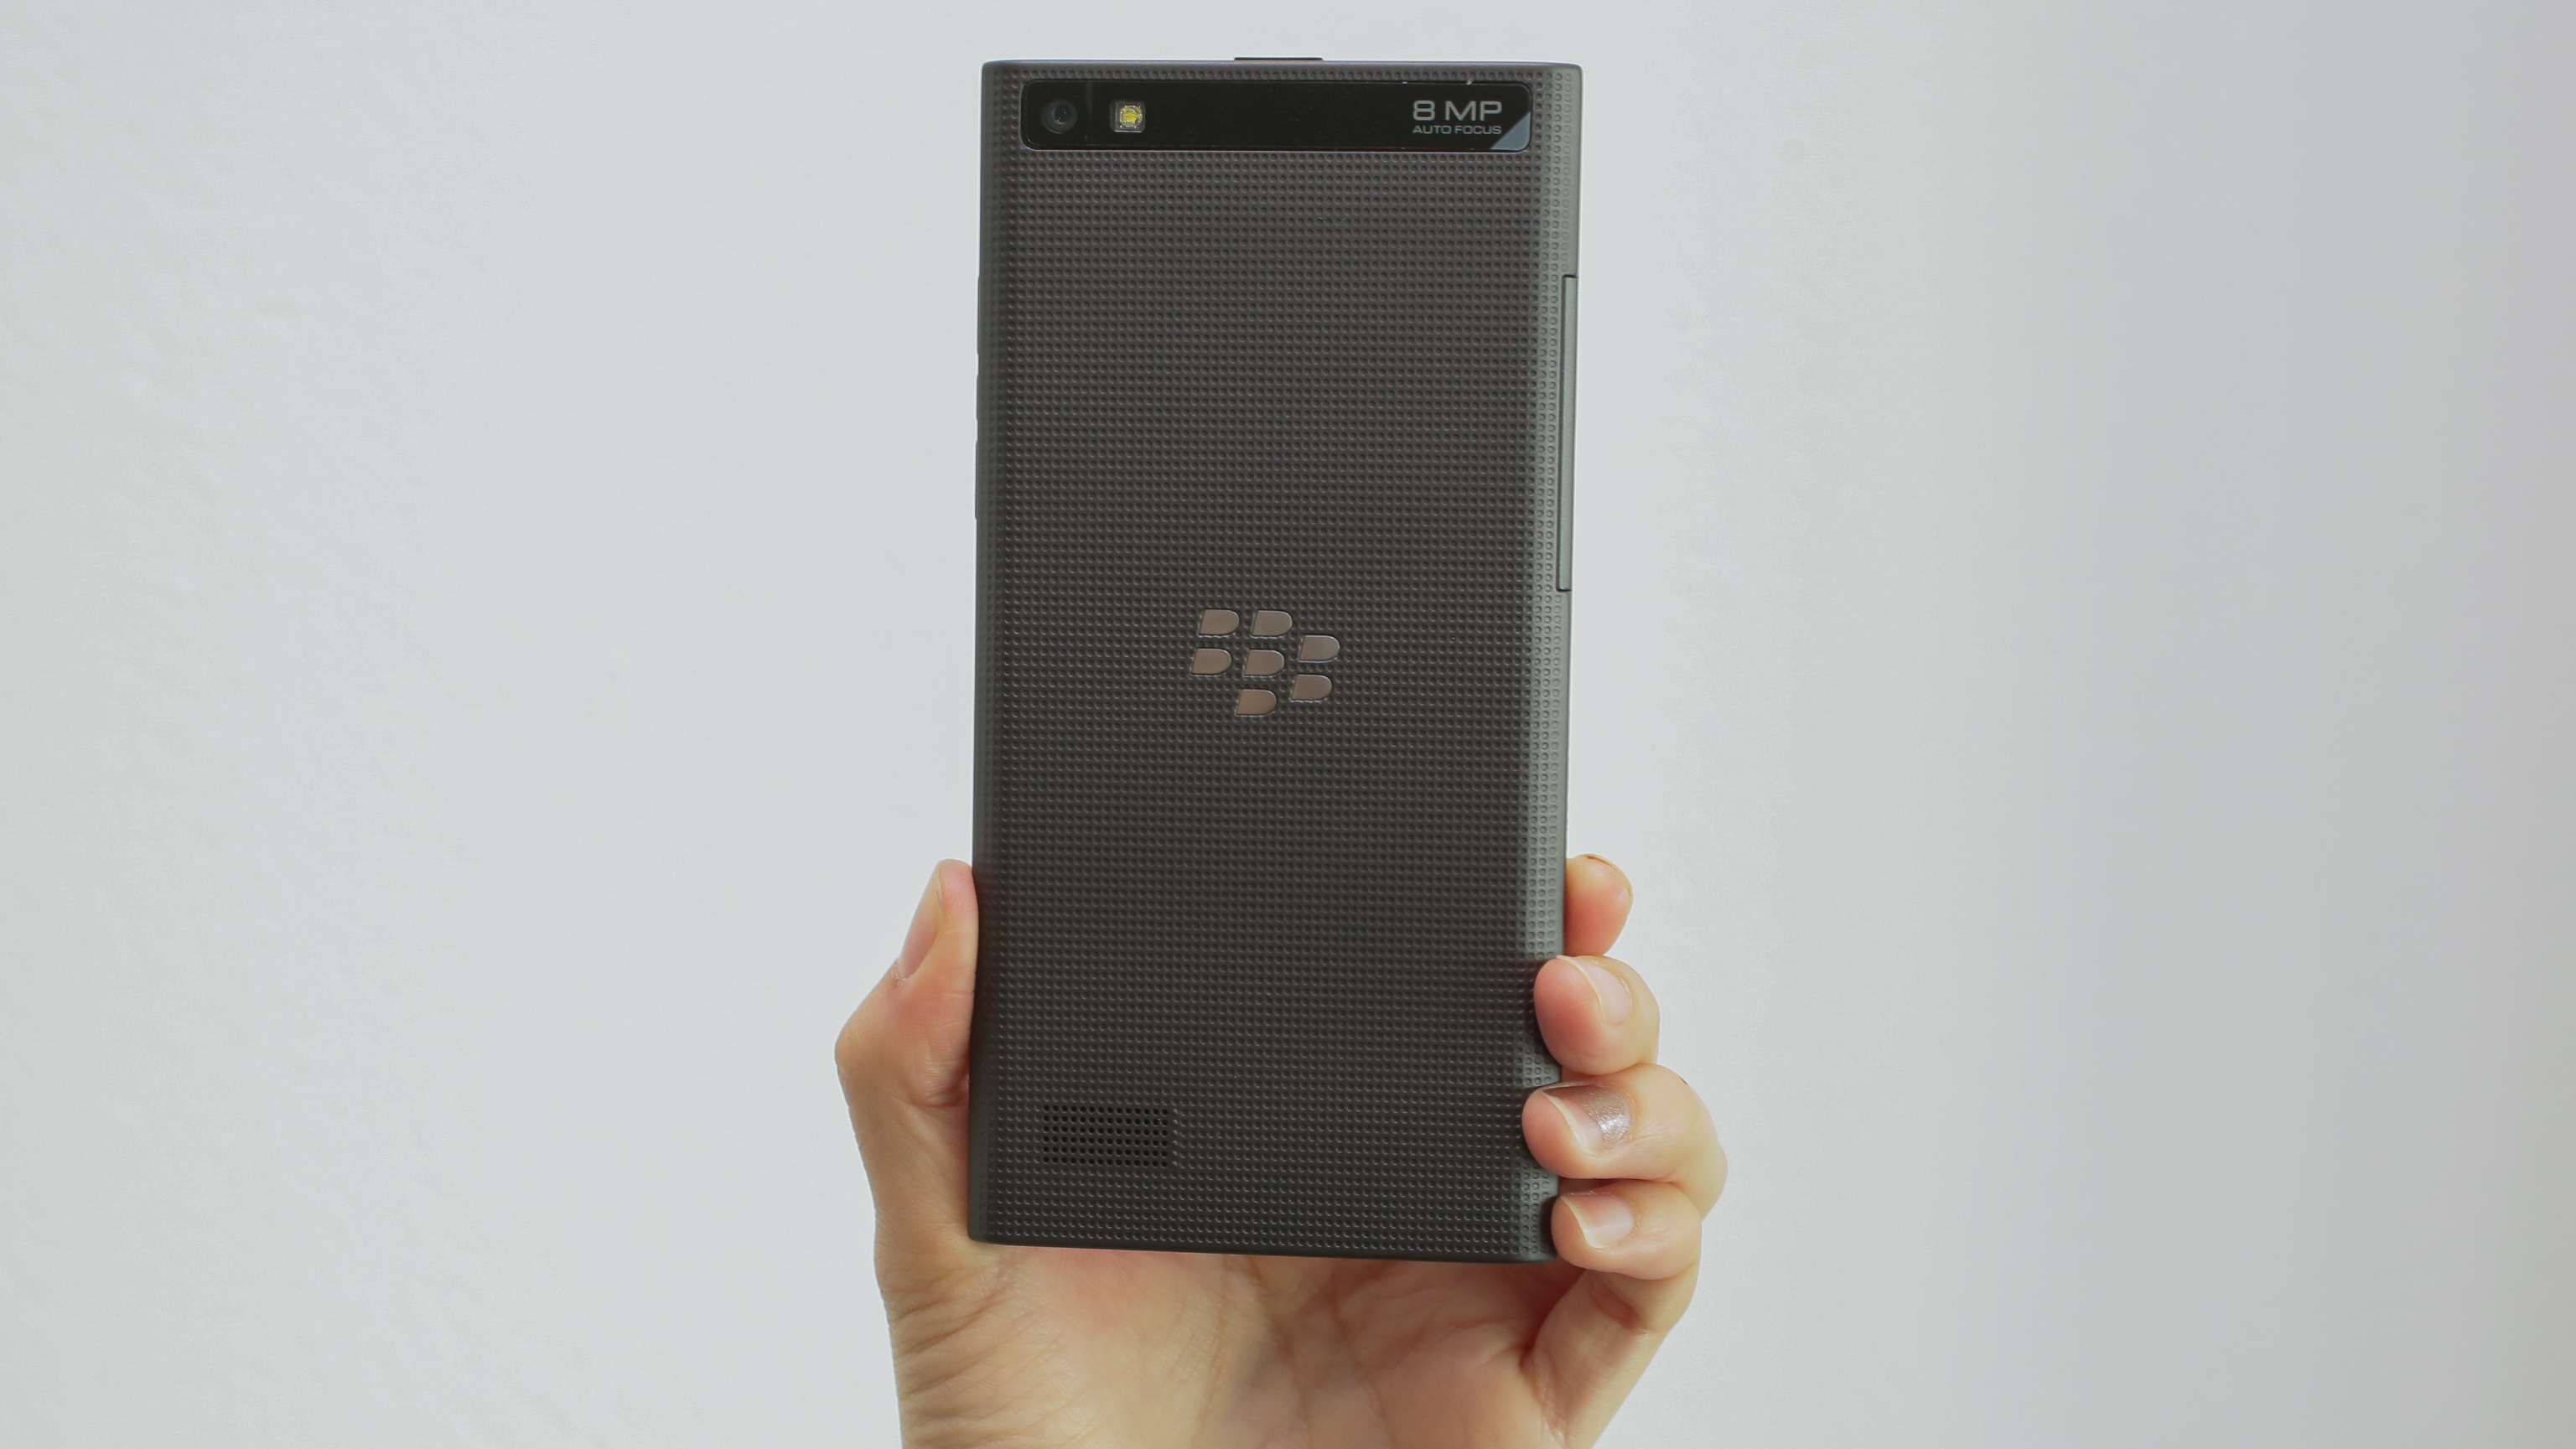 blackberry-leap-14.jpg